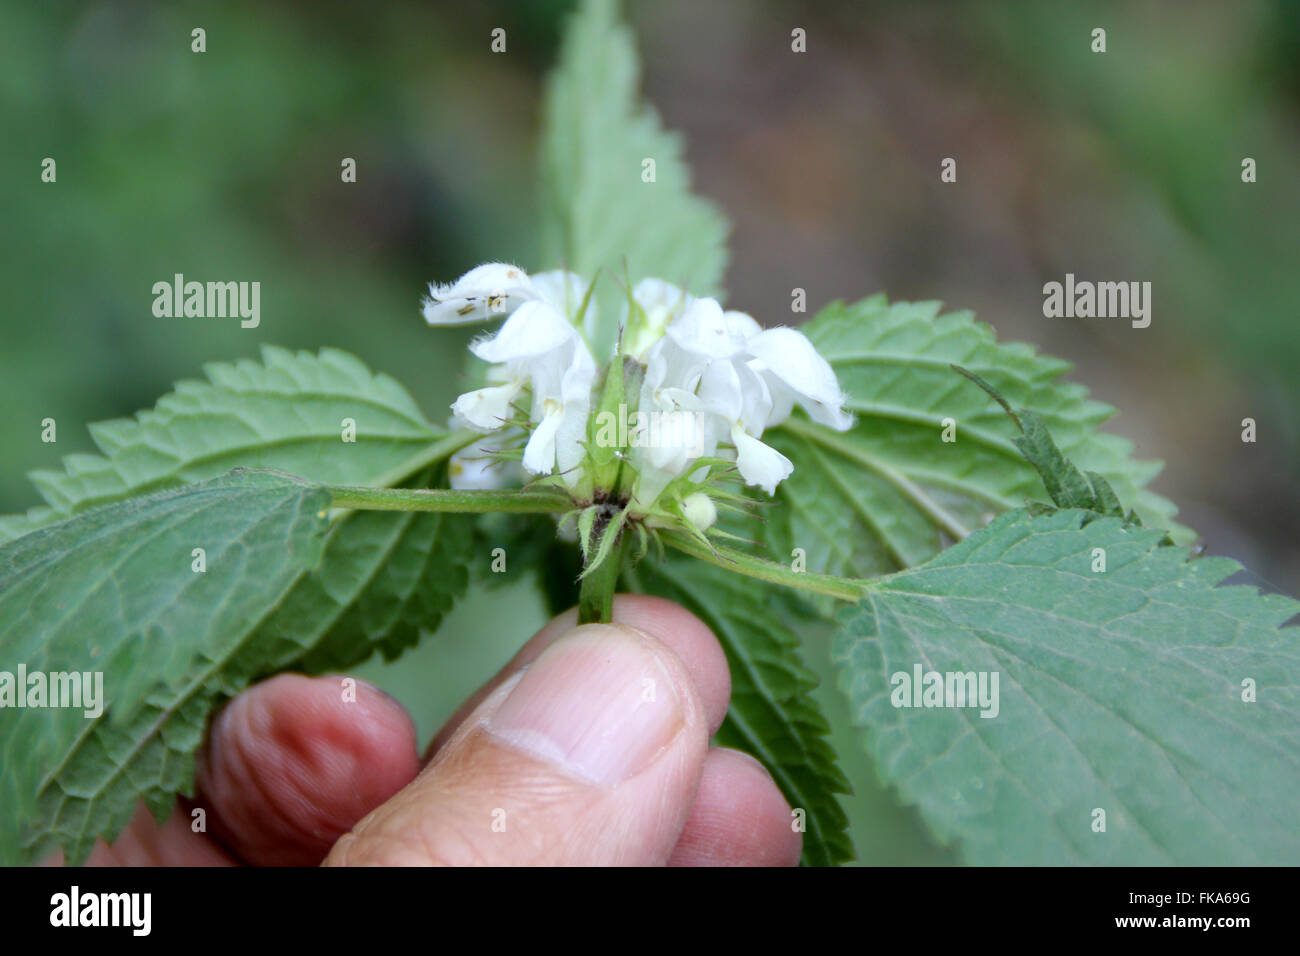 Lamium album, White nettle, herbaceous perennial with 4-angled stems, softly hairy serrate leaves and white fl - Stock Image